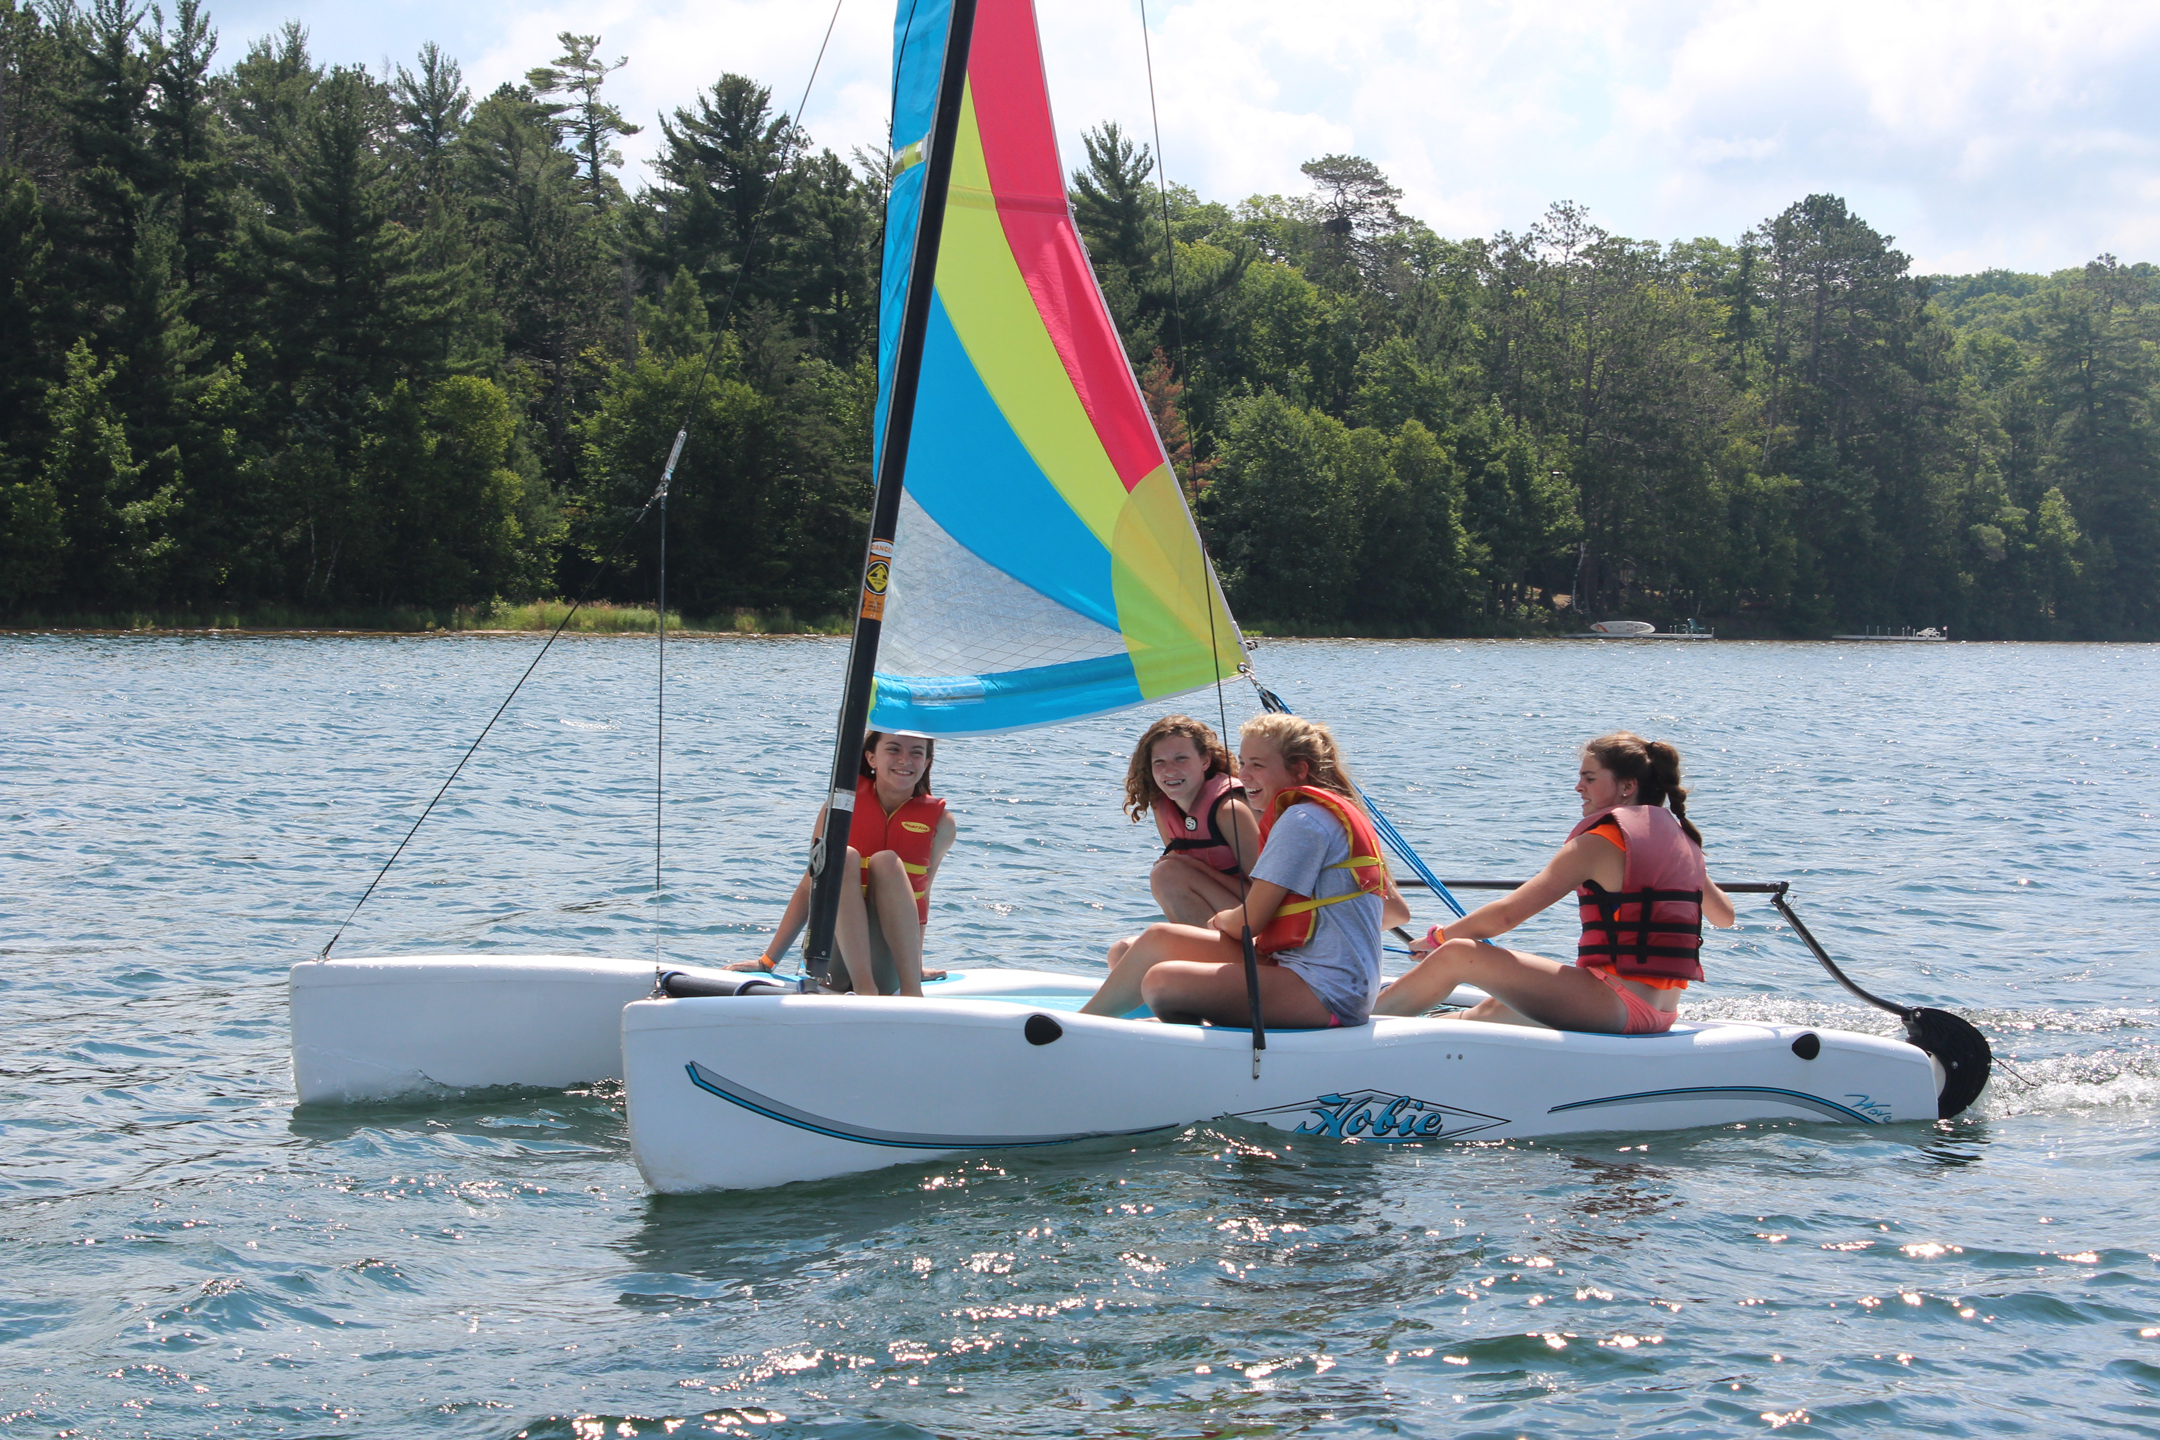 Summer Program - Water Sports | Camp Nicolet for Girls